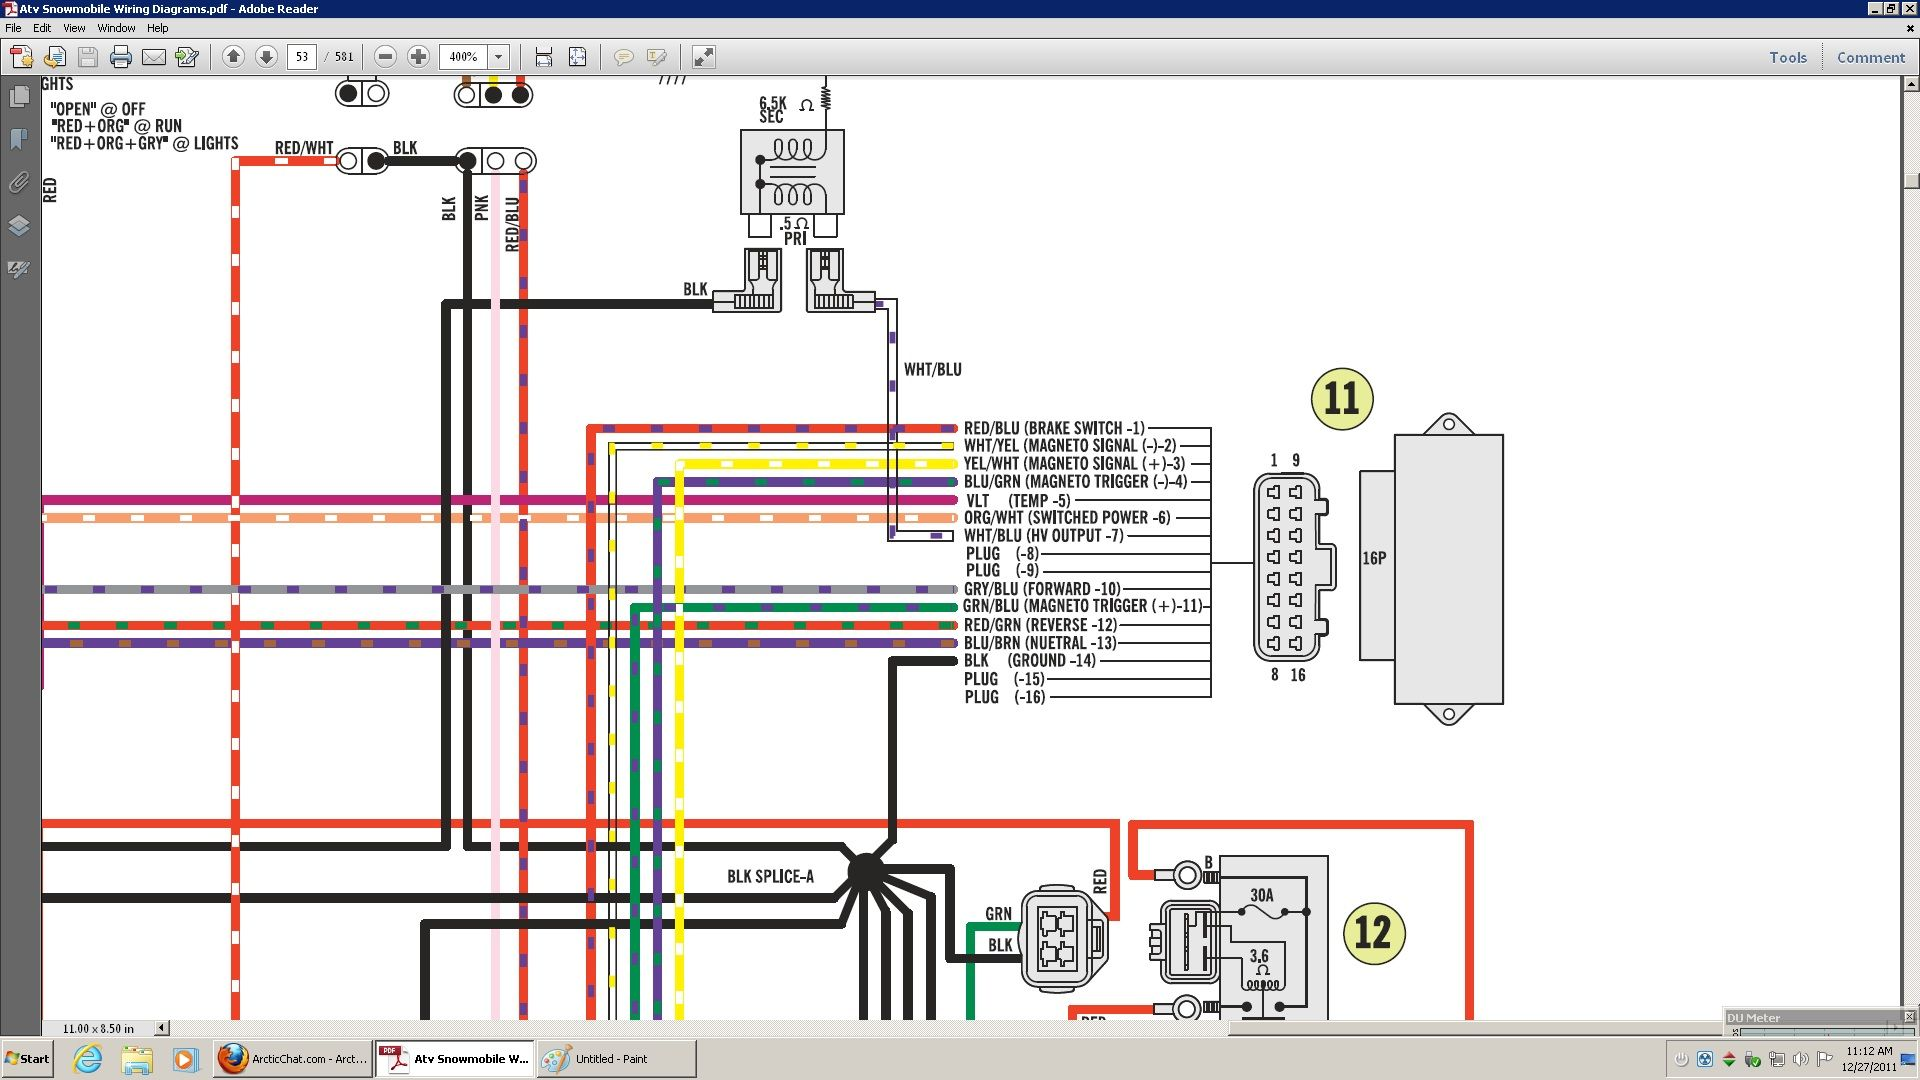 battery cable wiring diagram polaris scrambler image result for battery wiring diagram for 2008 polaris ... #4